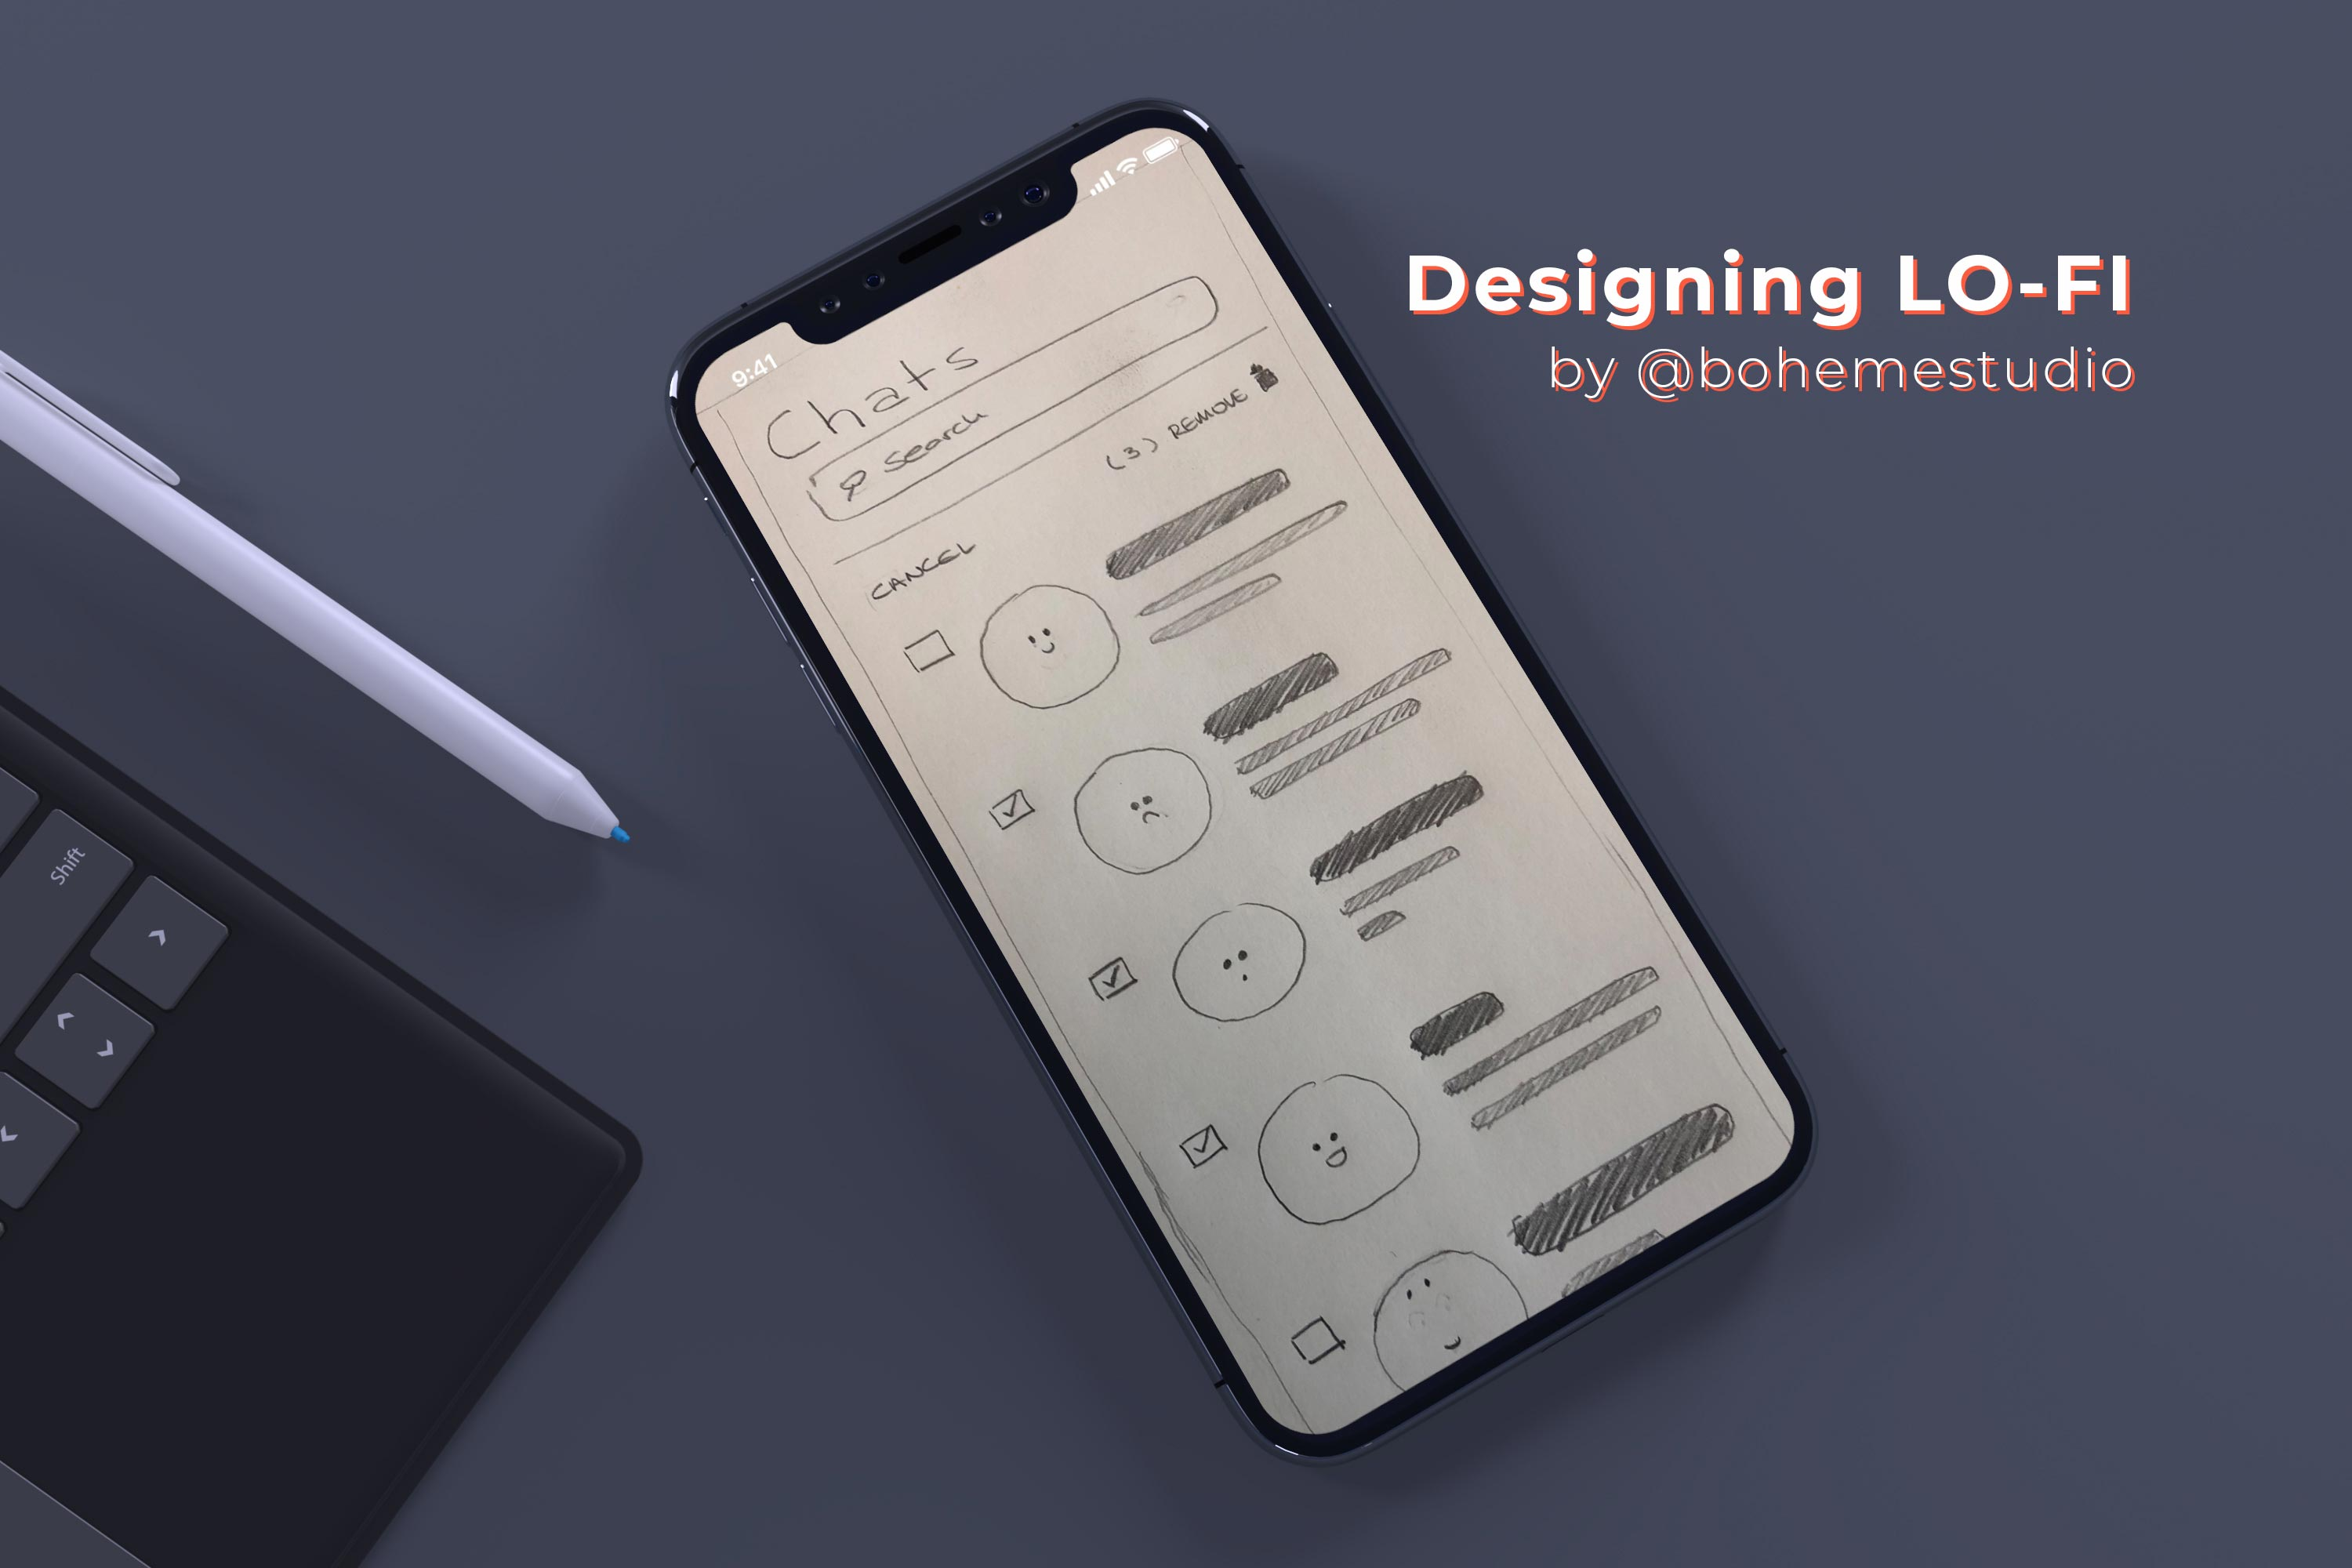 Designing Lo-fi (by bohemestudio) - Cover